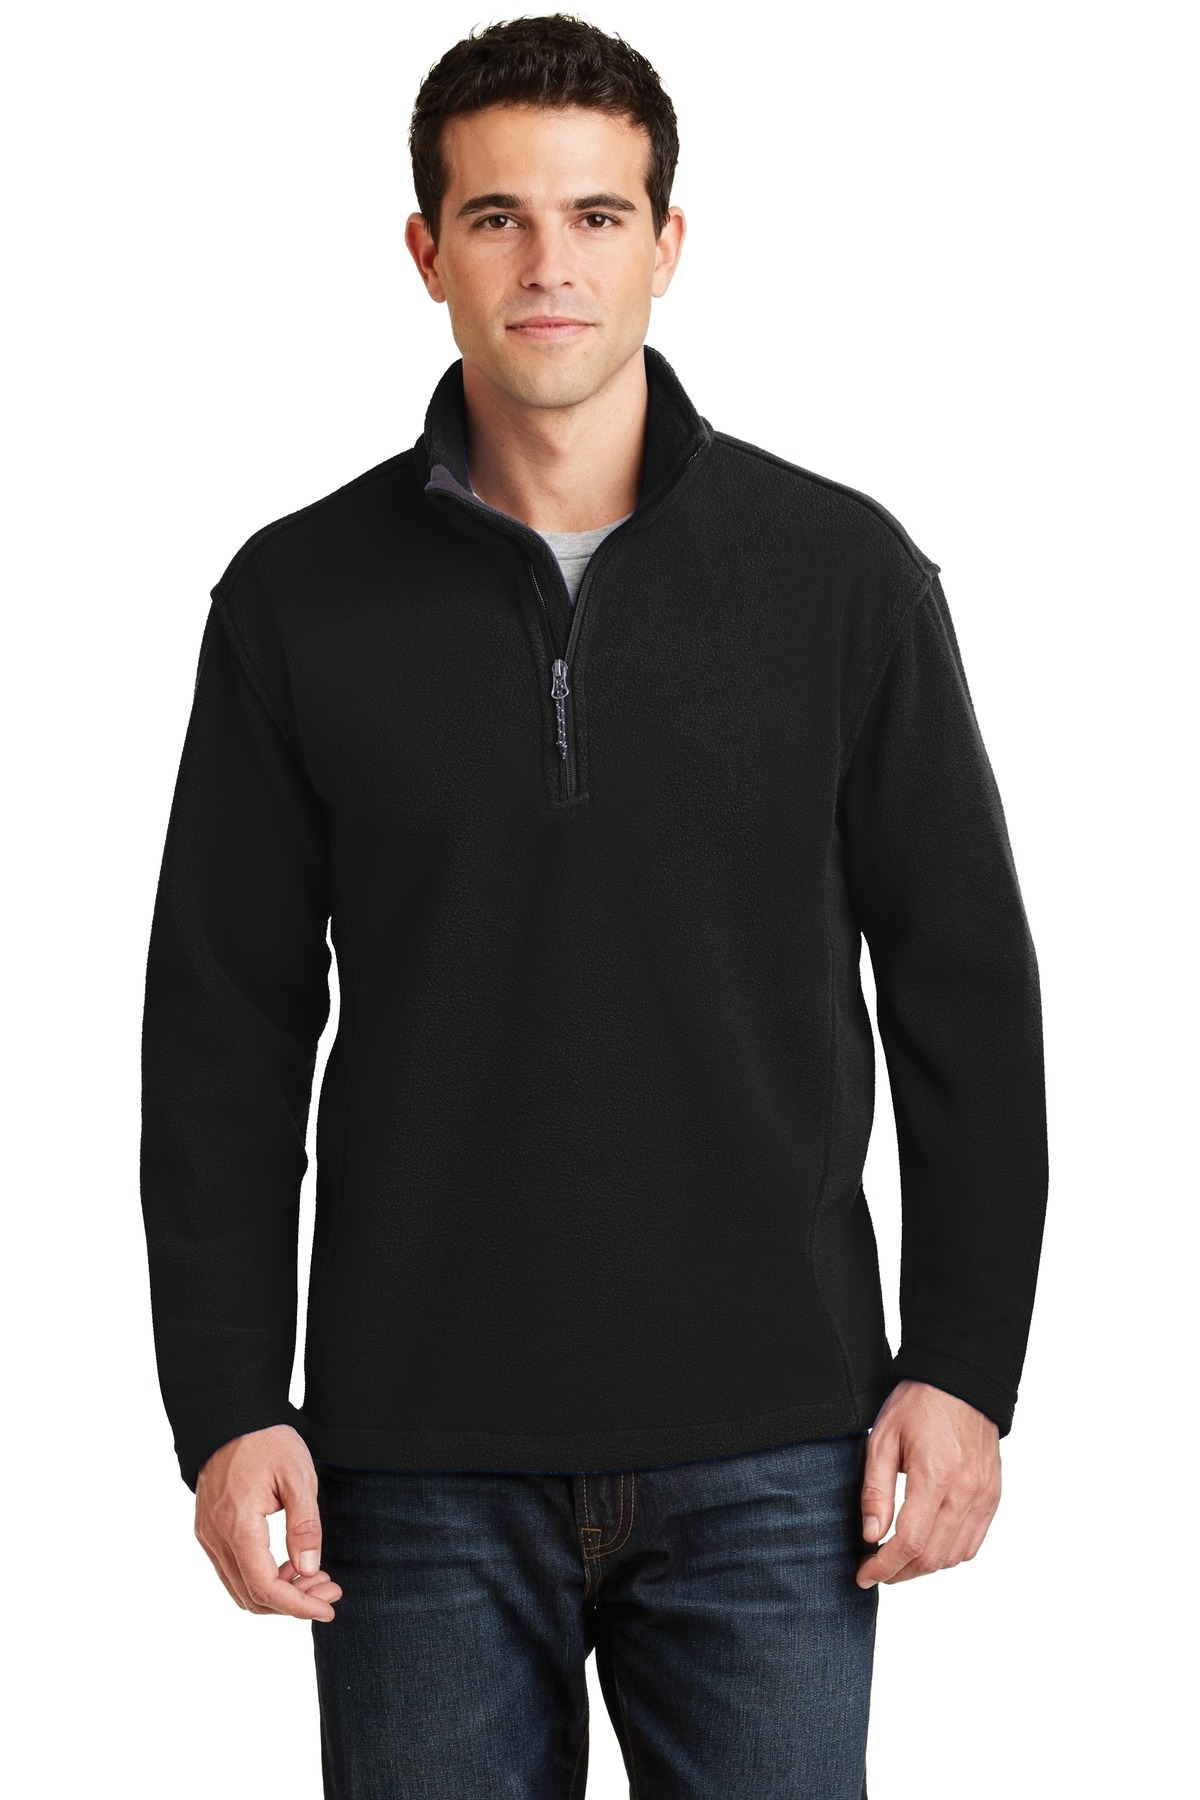 Port Authority® Value Fleece 1/4-Zip Pullover.-Port Authority